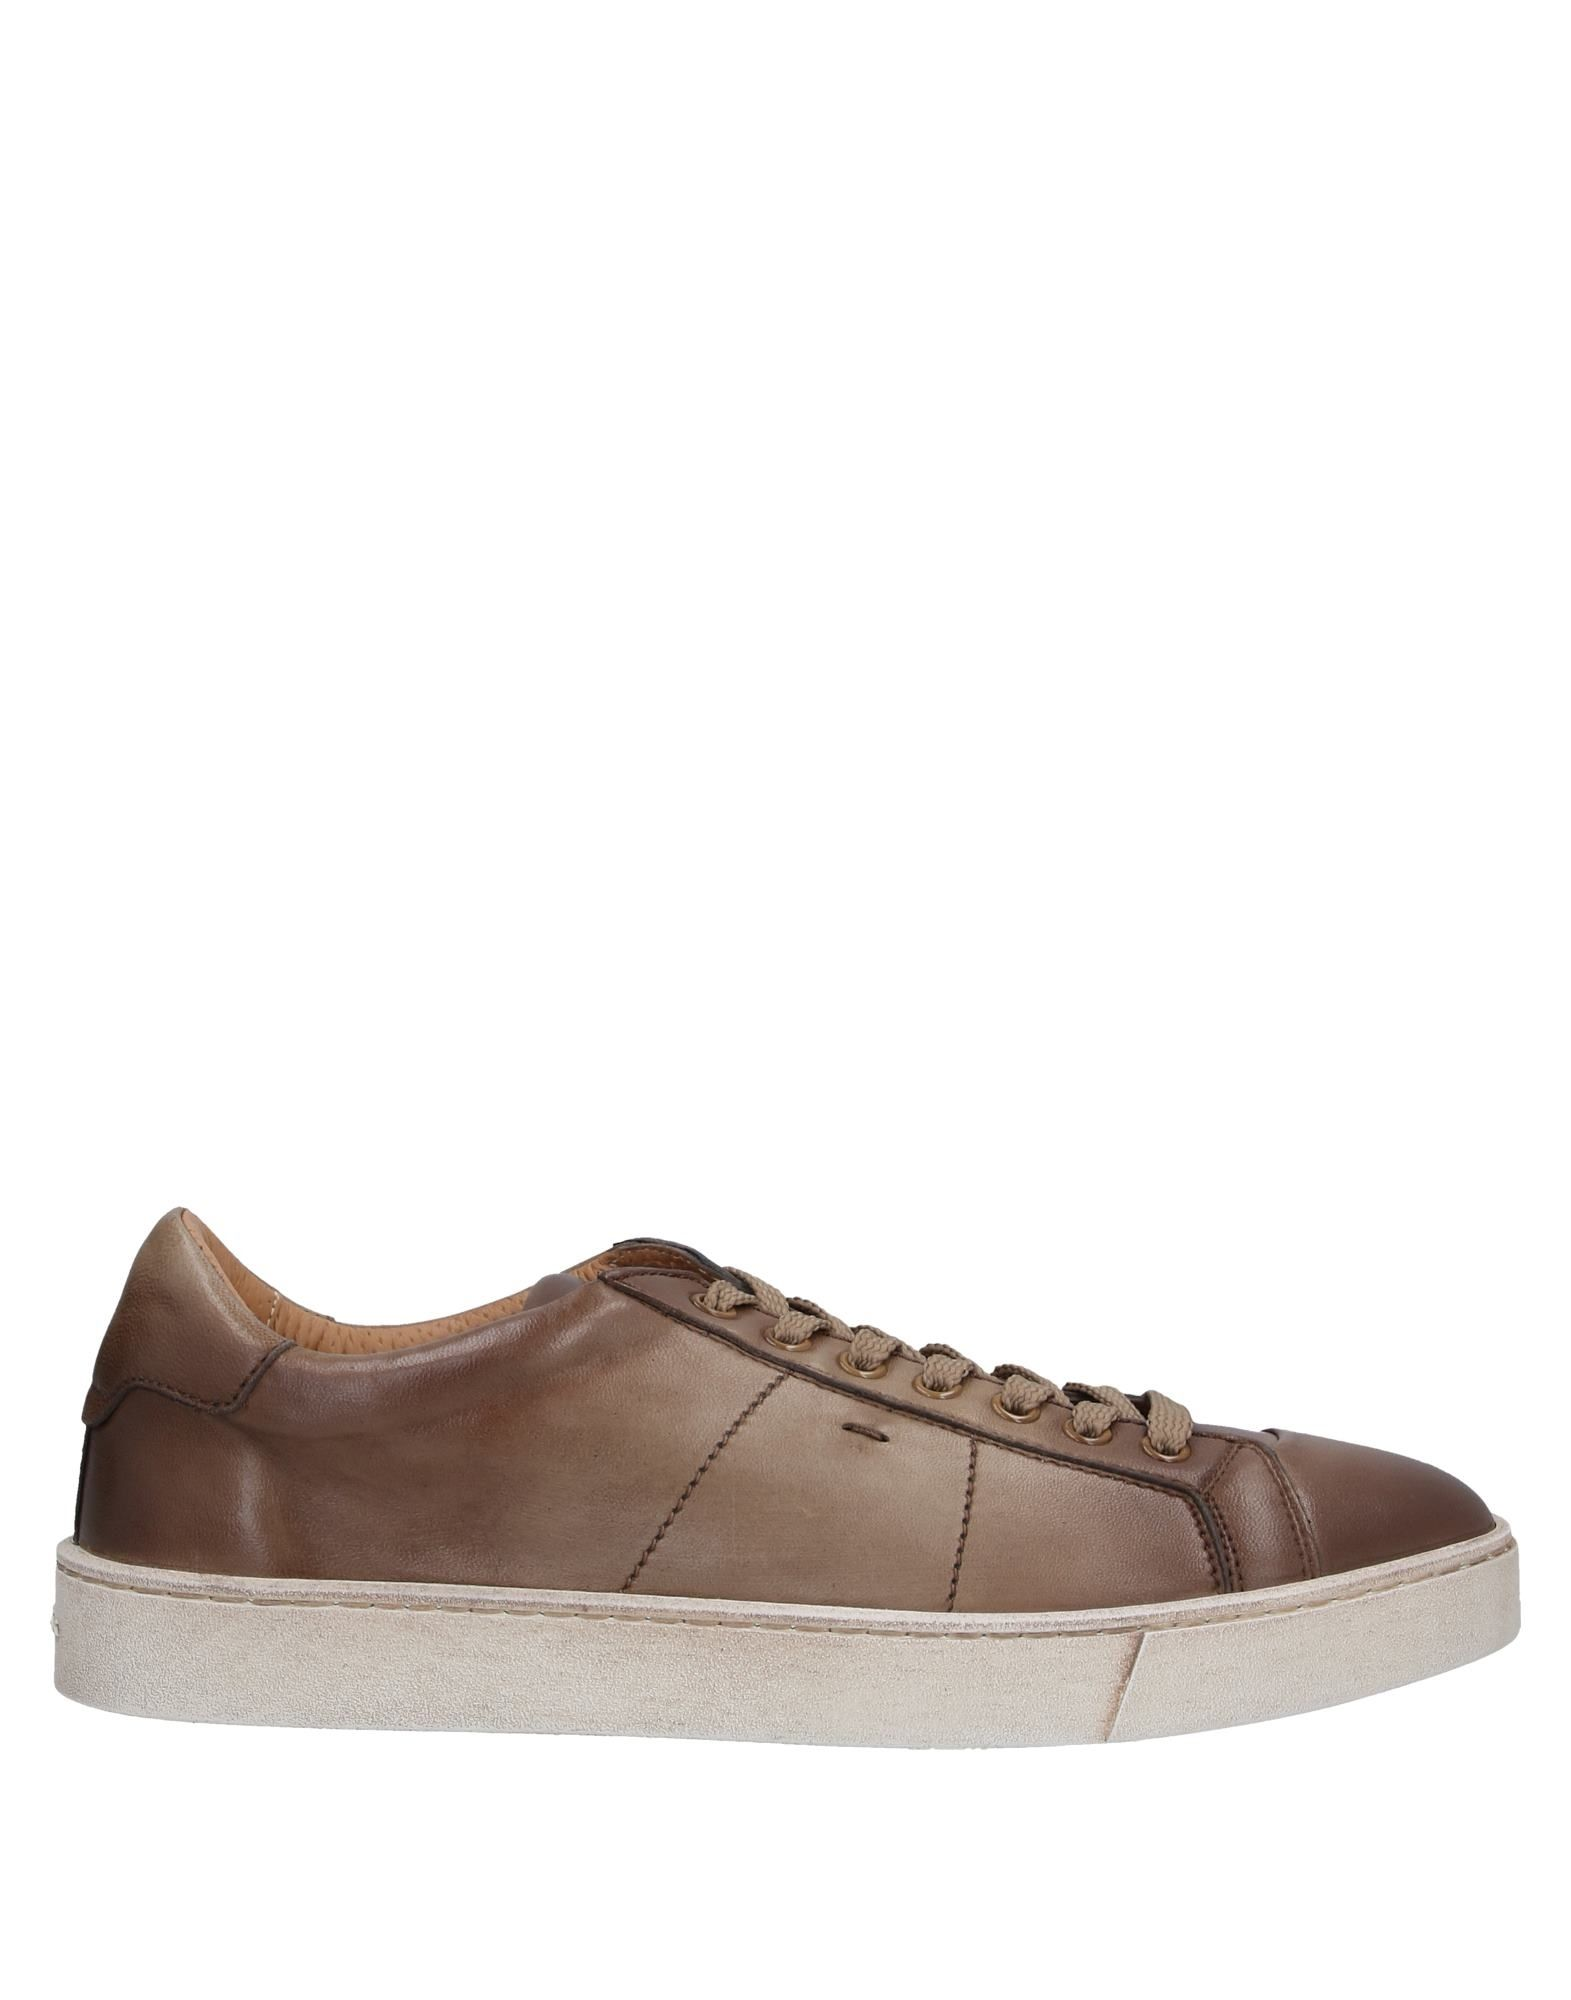 SANTONI Sneakers. leather, logo, solid color, laces, round toeline, flat, leather lining, rubber cleated sole, contains non-textile parts of animal origin, large sized. Soft Leather